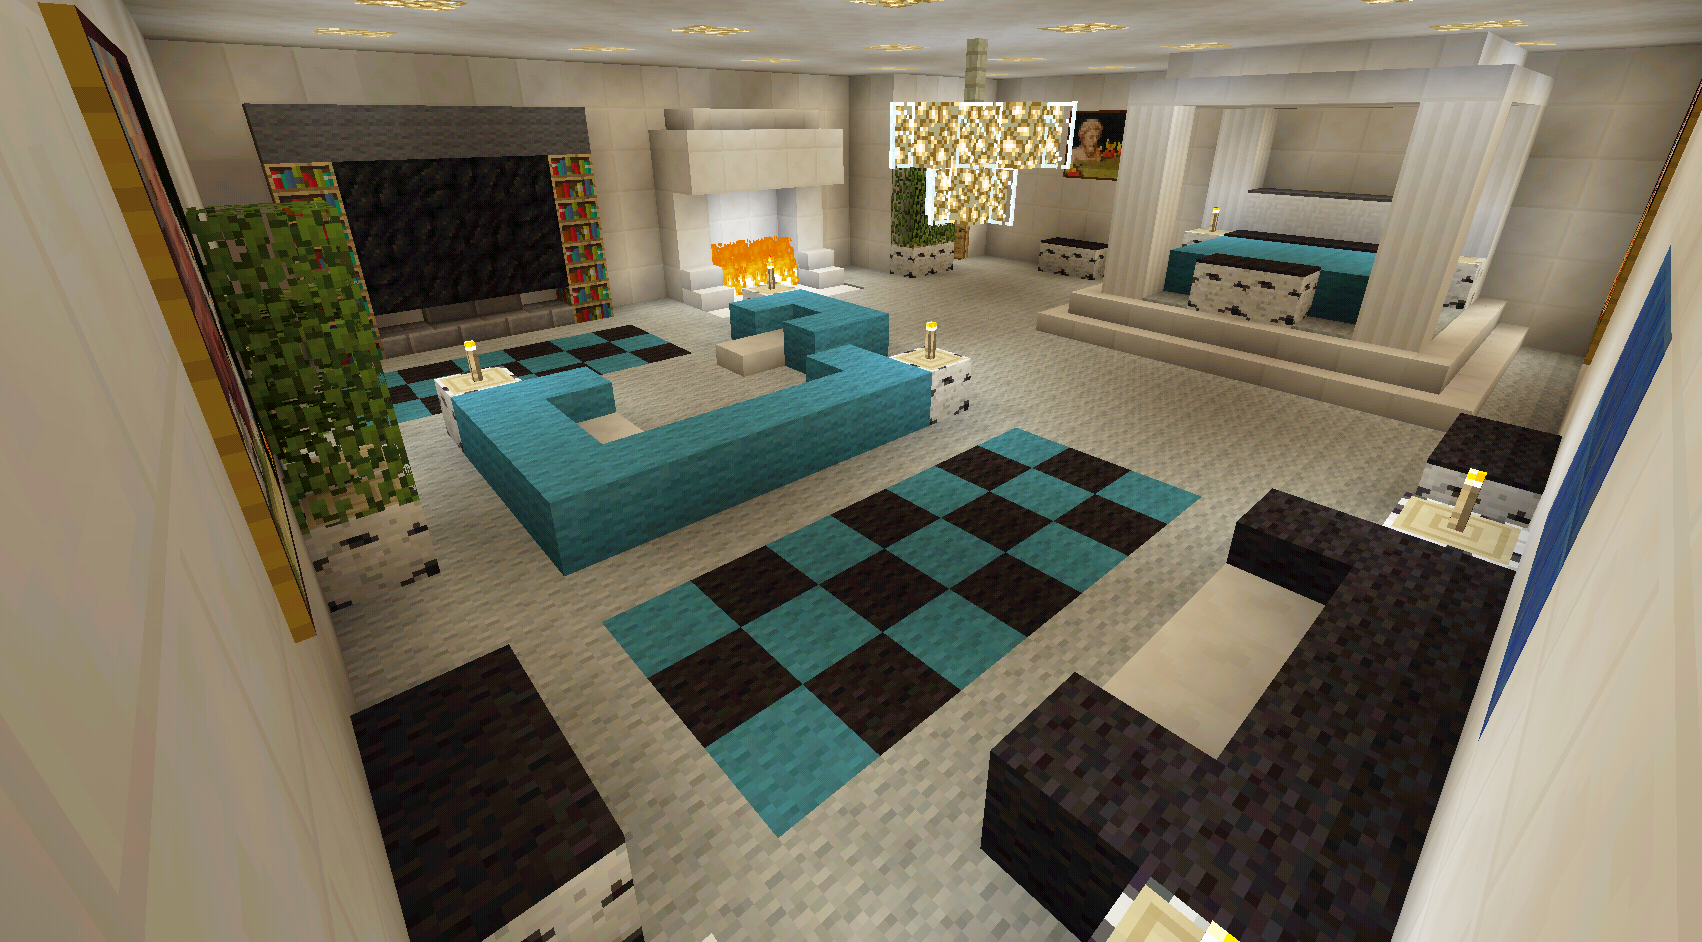 Minecraft Bedroom With Living Area Furniture And Canopy Bed And